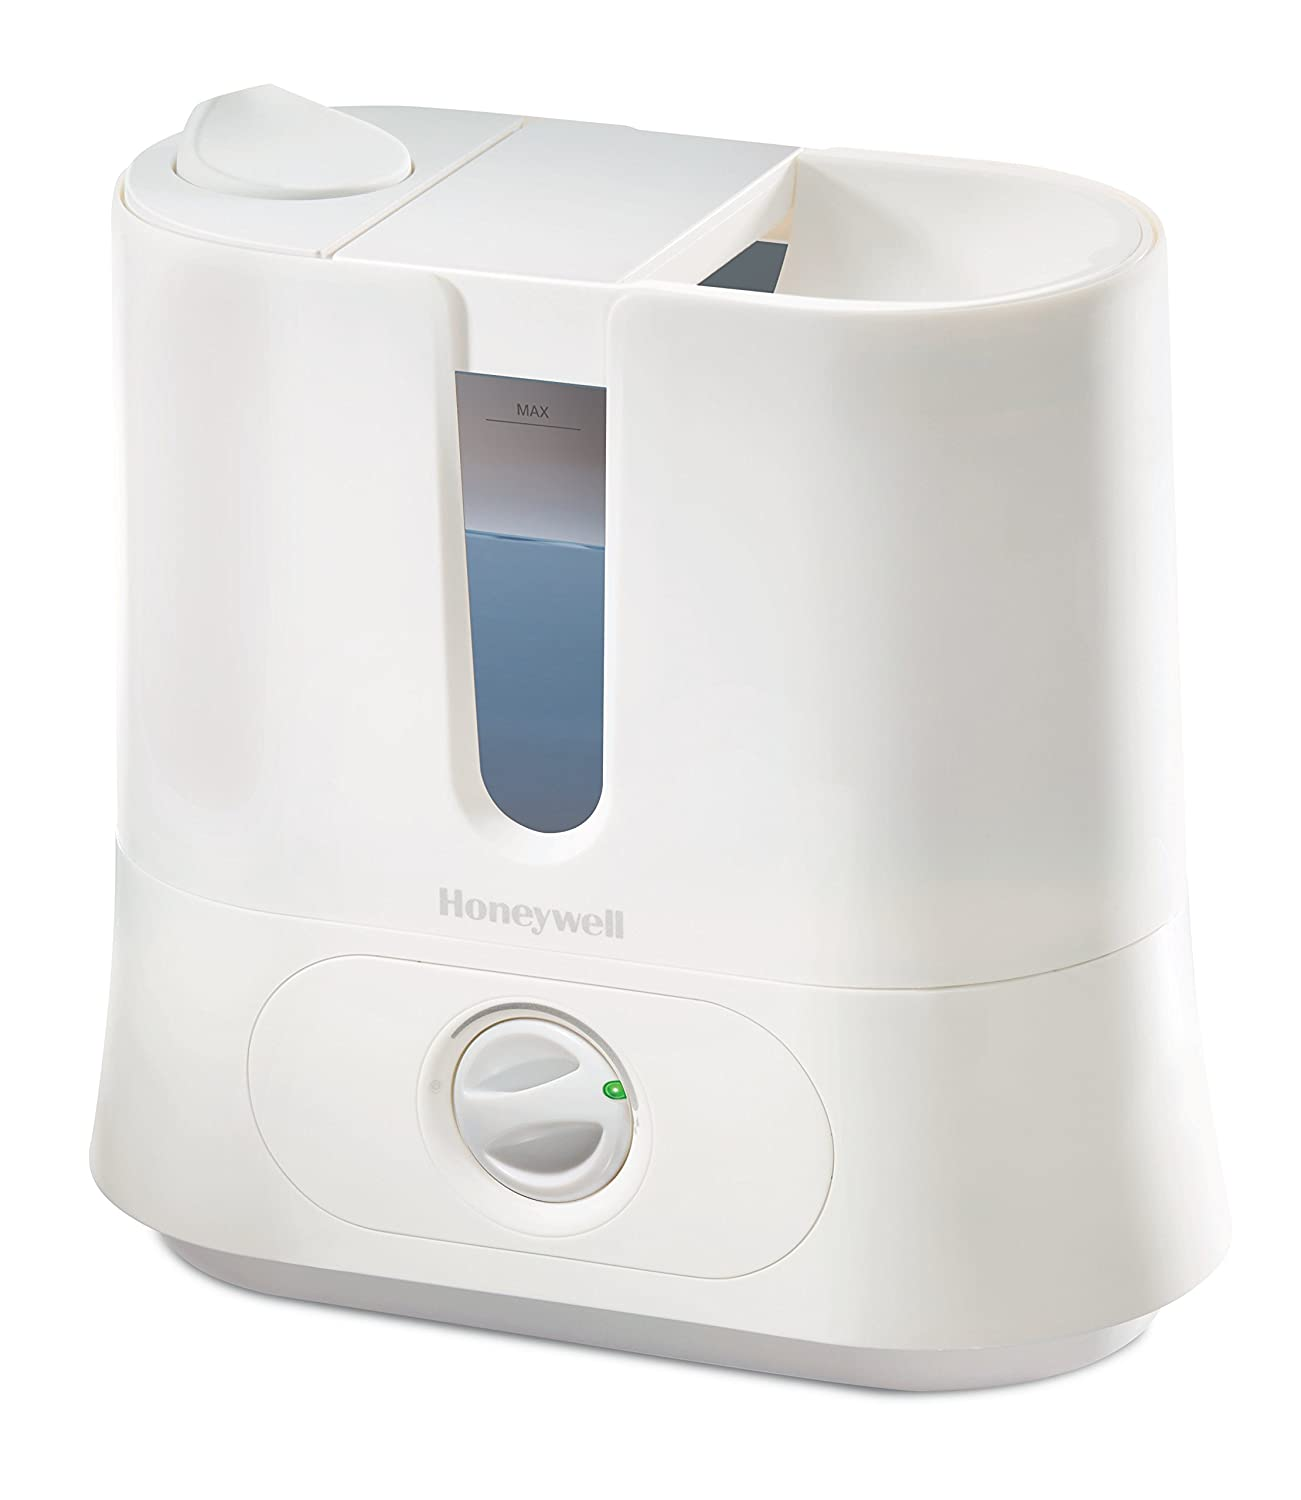 Honeywell Easy to Care Removable Top Fill Ultrasonic Cool Mist Humidifier, White